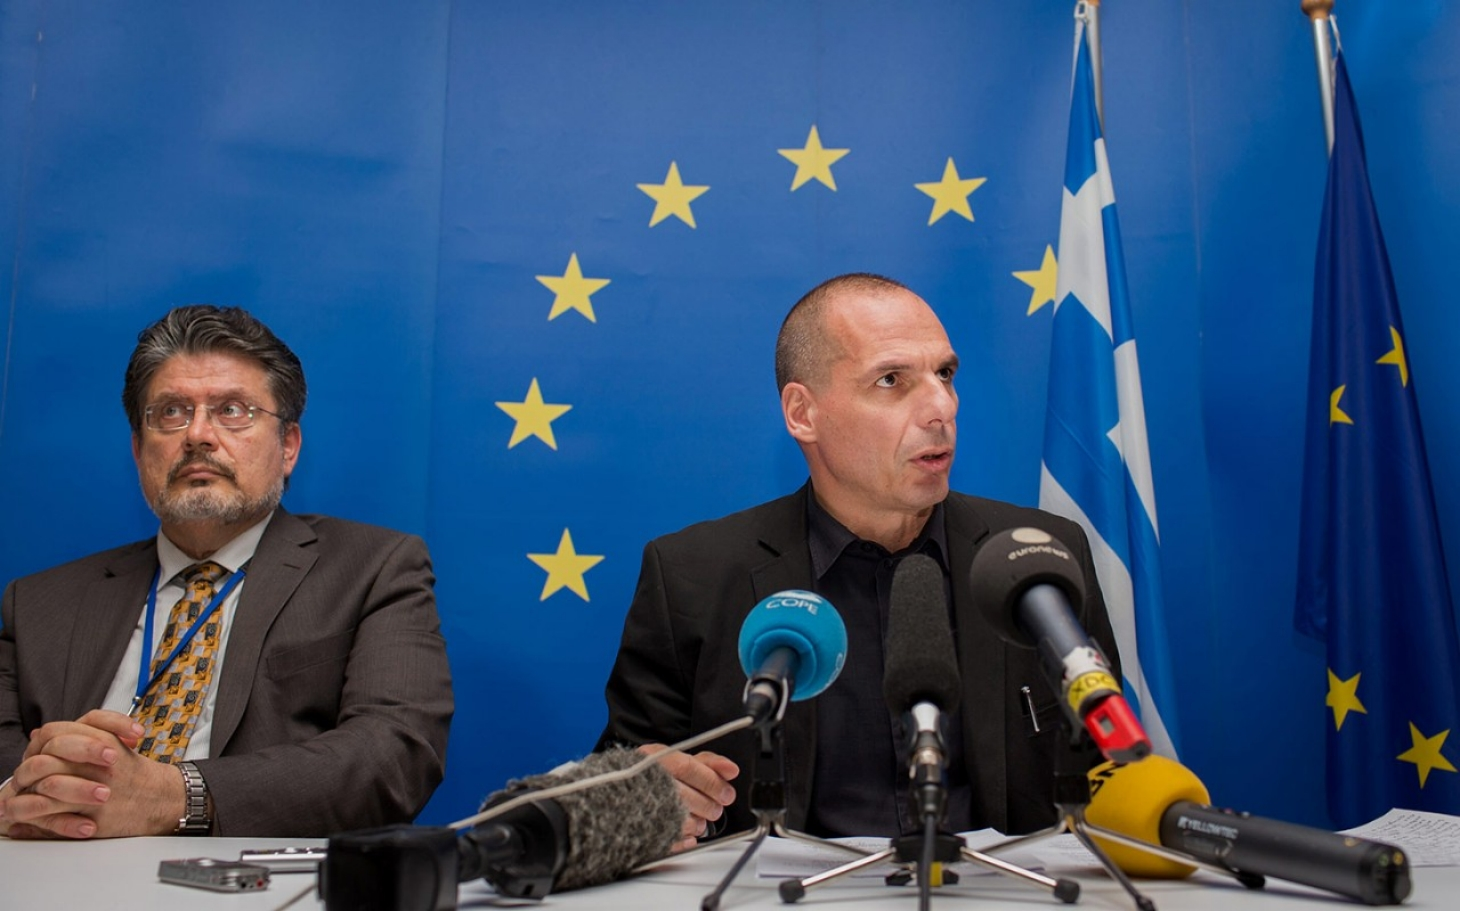 Europe to Hold Emergency Greece Summit Greece | Al Jazeera ...